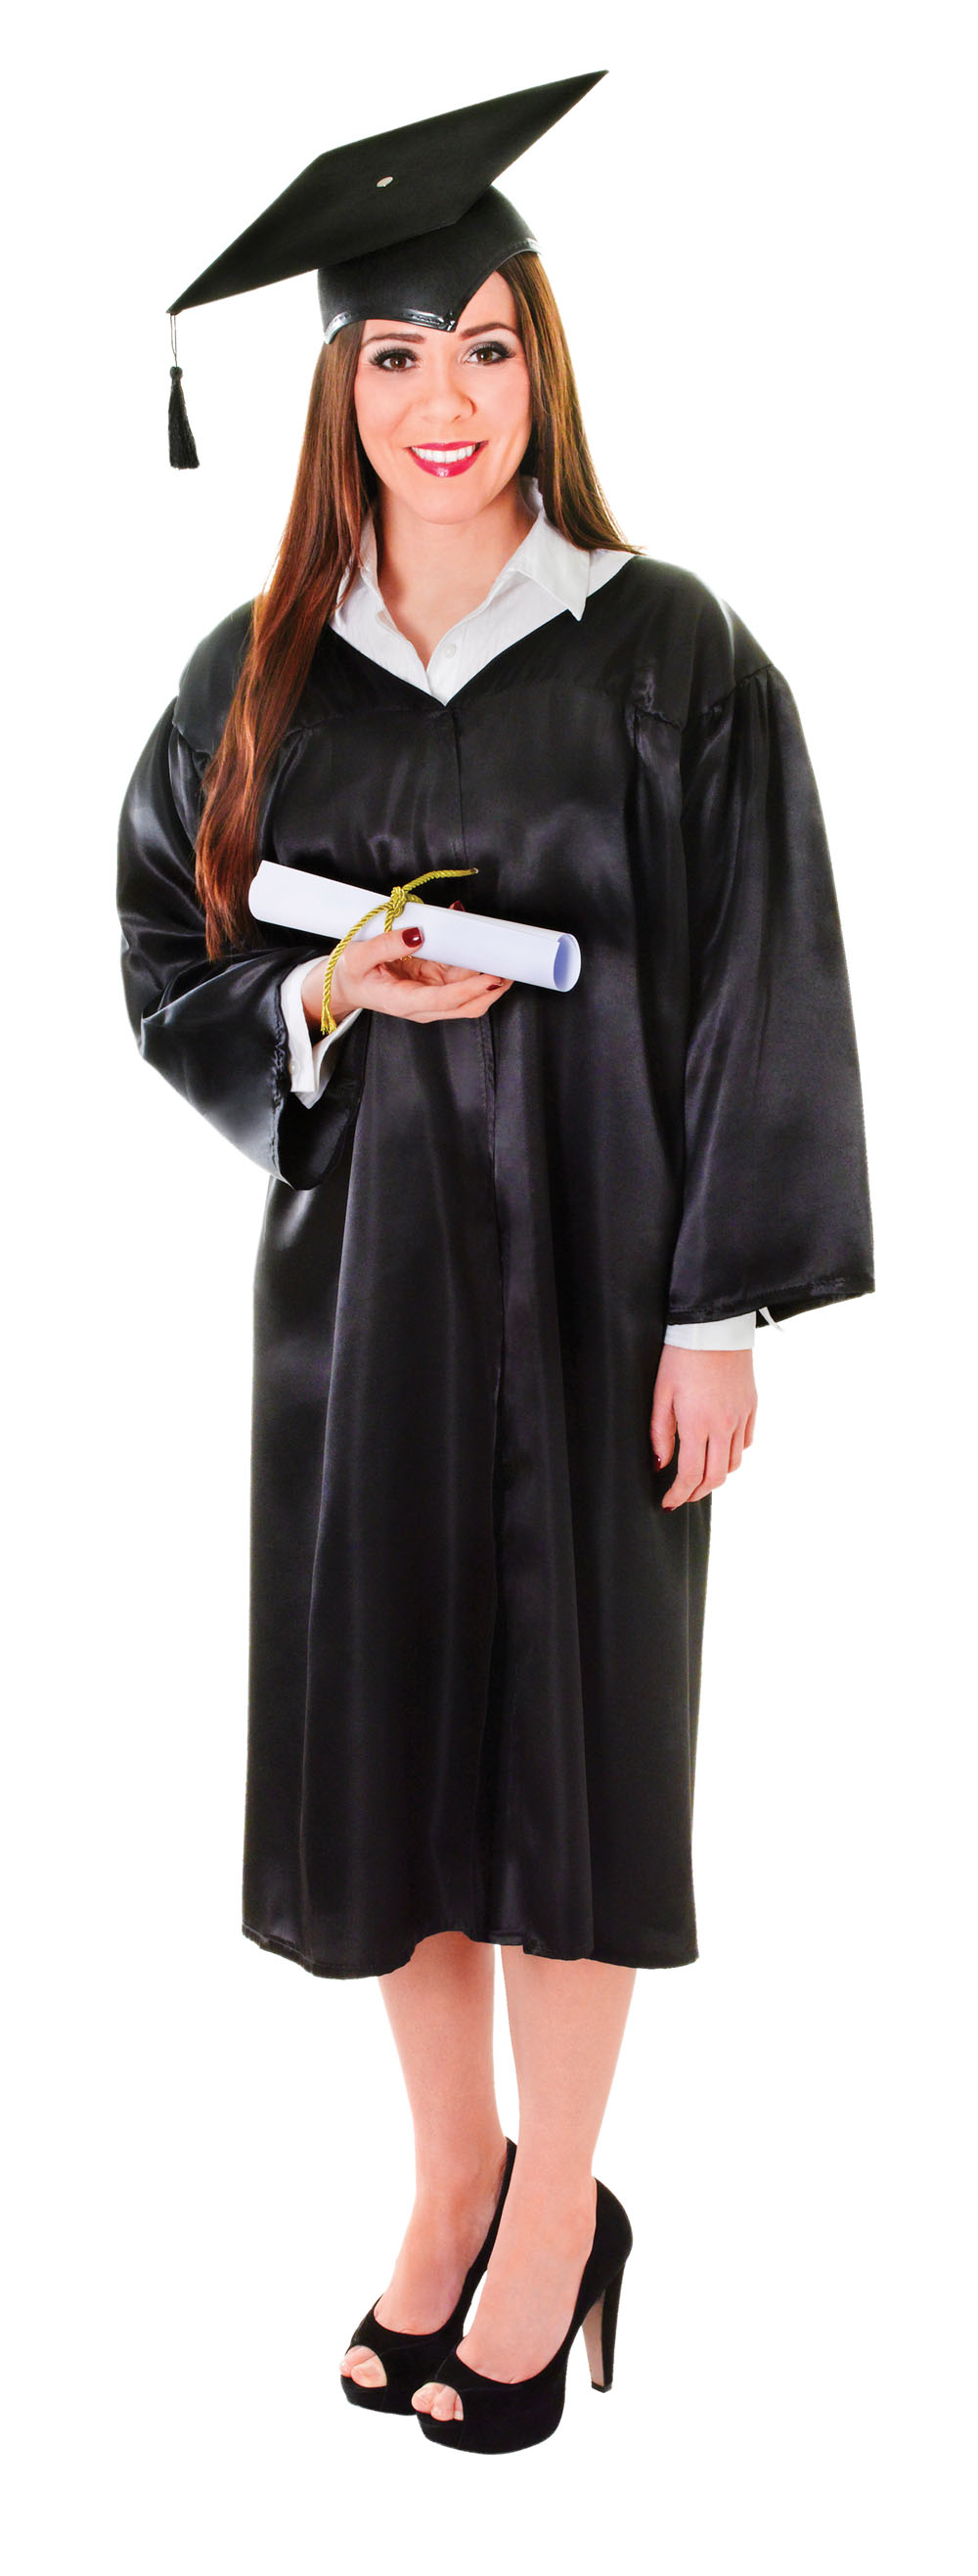 Unisex Black Graduation Robe Fancy Dress Costume University College Outfit New